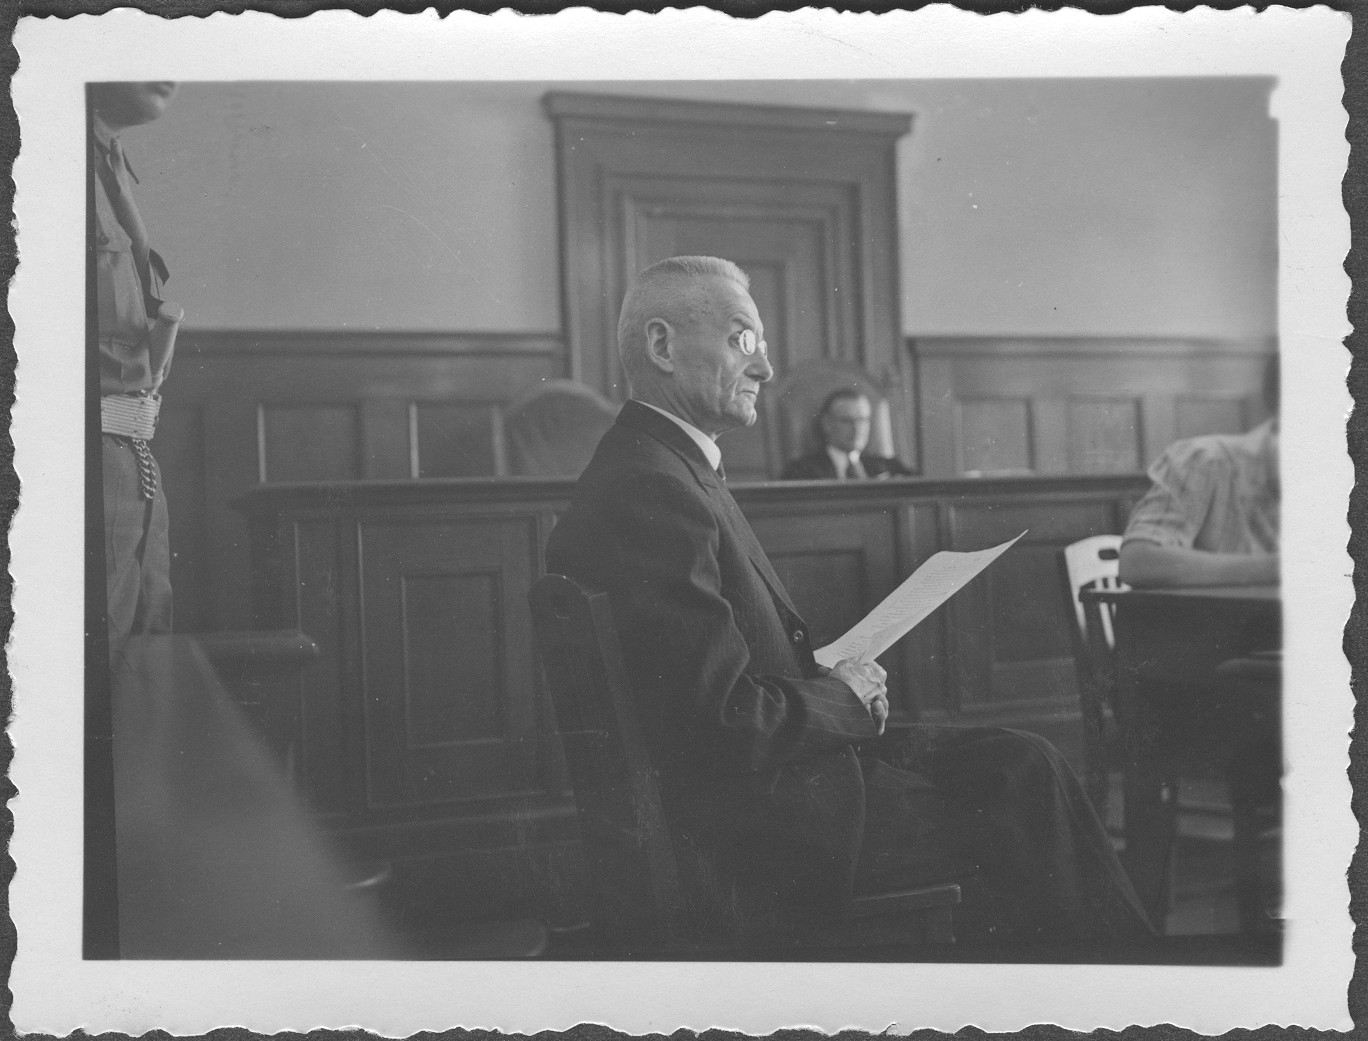 General Franz Halder, former Chief of Staff of the German Armed Forces, testifies before Commissioner Ian D. McIlwraith at the IMT Nuremberg commission hearings investigating indicted Nazi organizations.